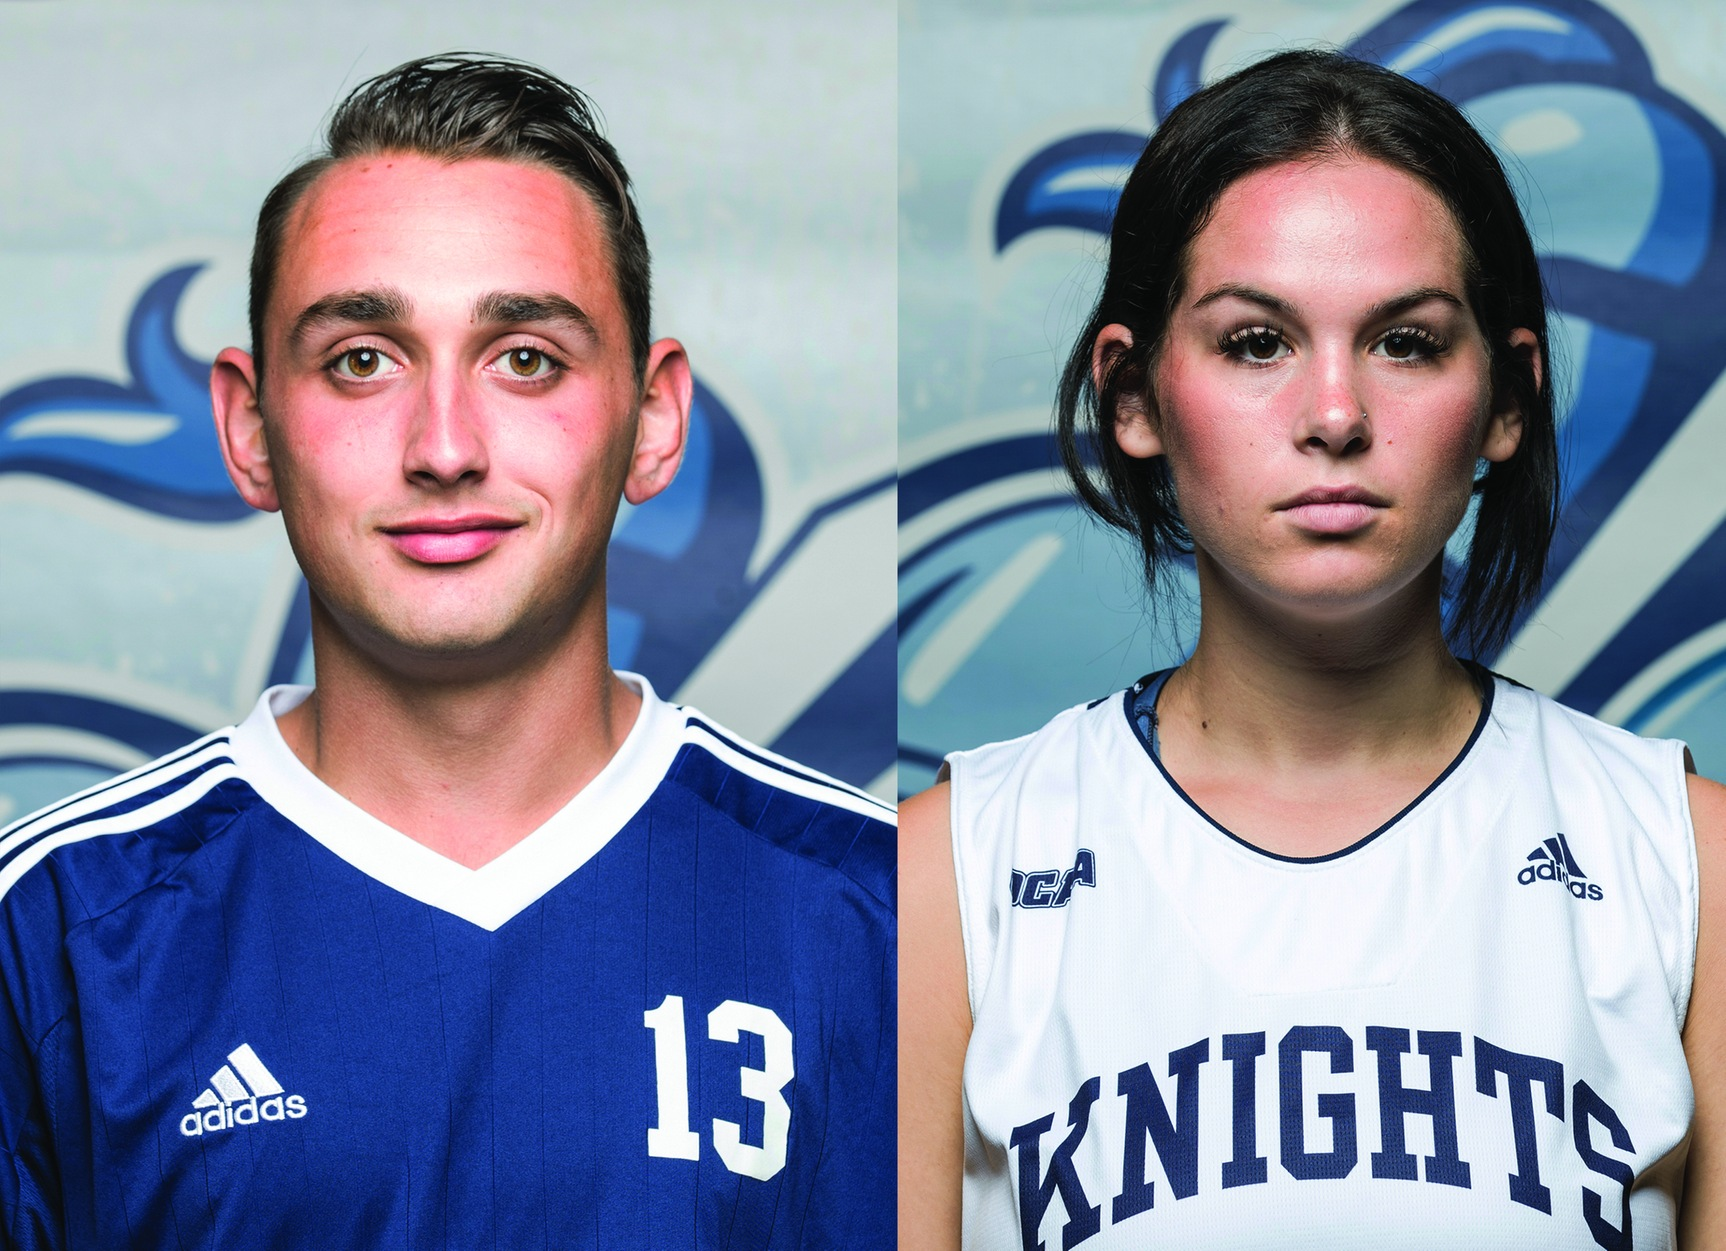 NEWS: Therrien and Ingribelli named athletes of the week